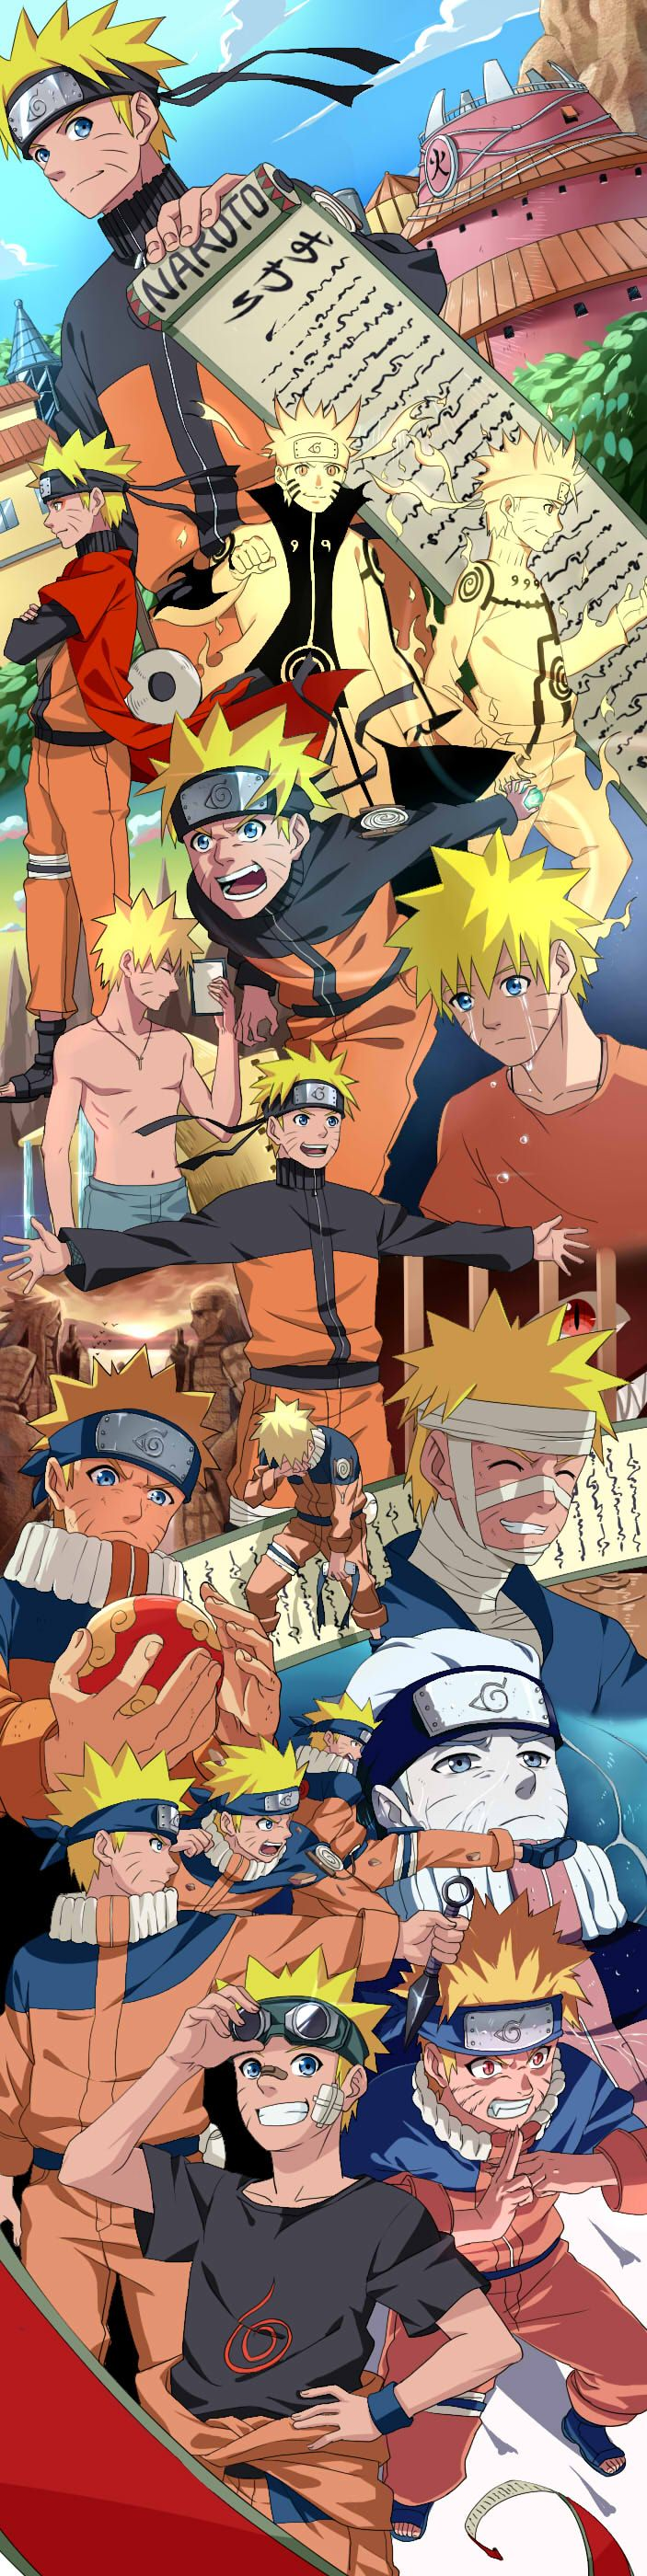 Finally found the naruto version from this artist...already pinned sasuke and sakura versions